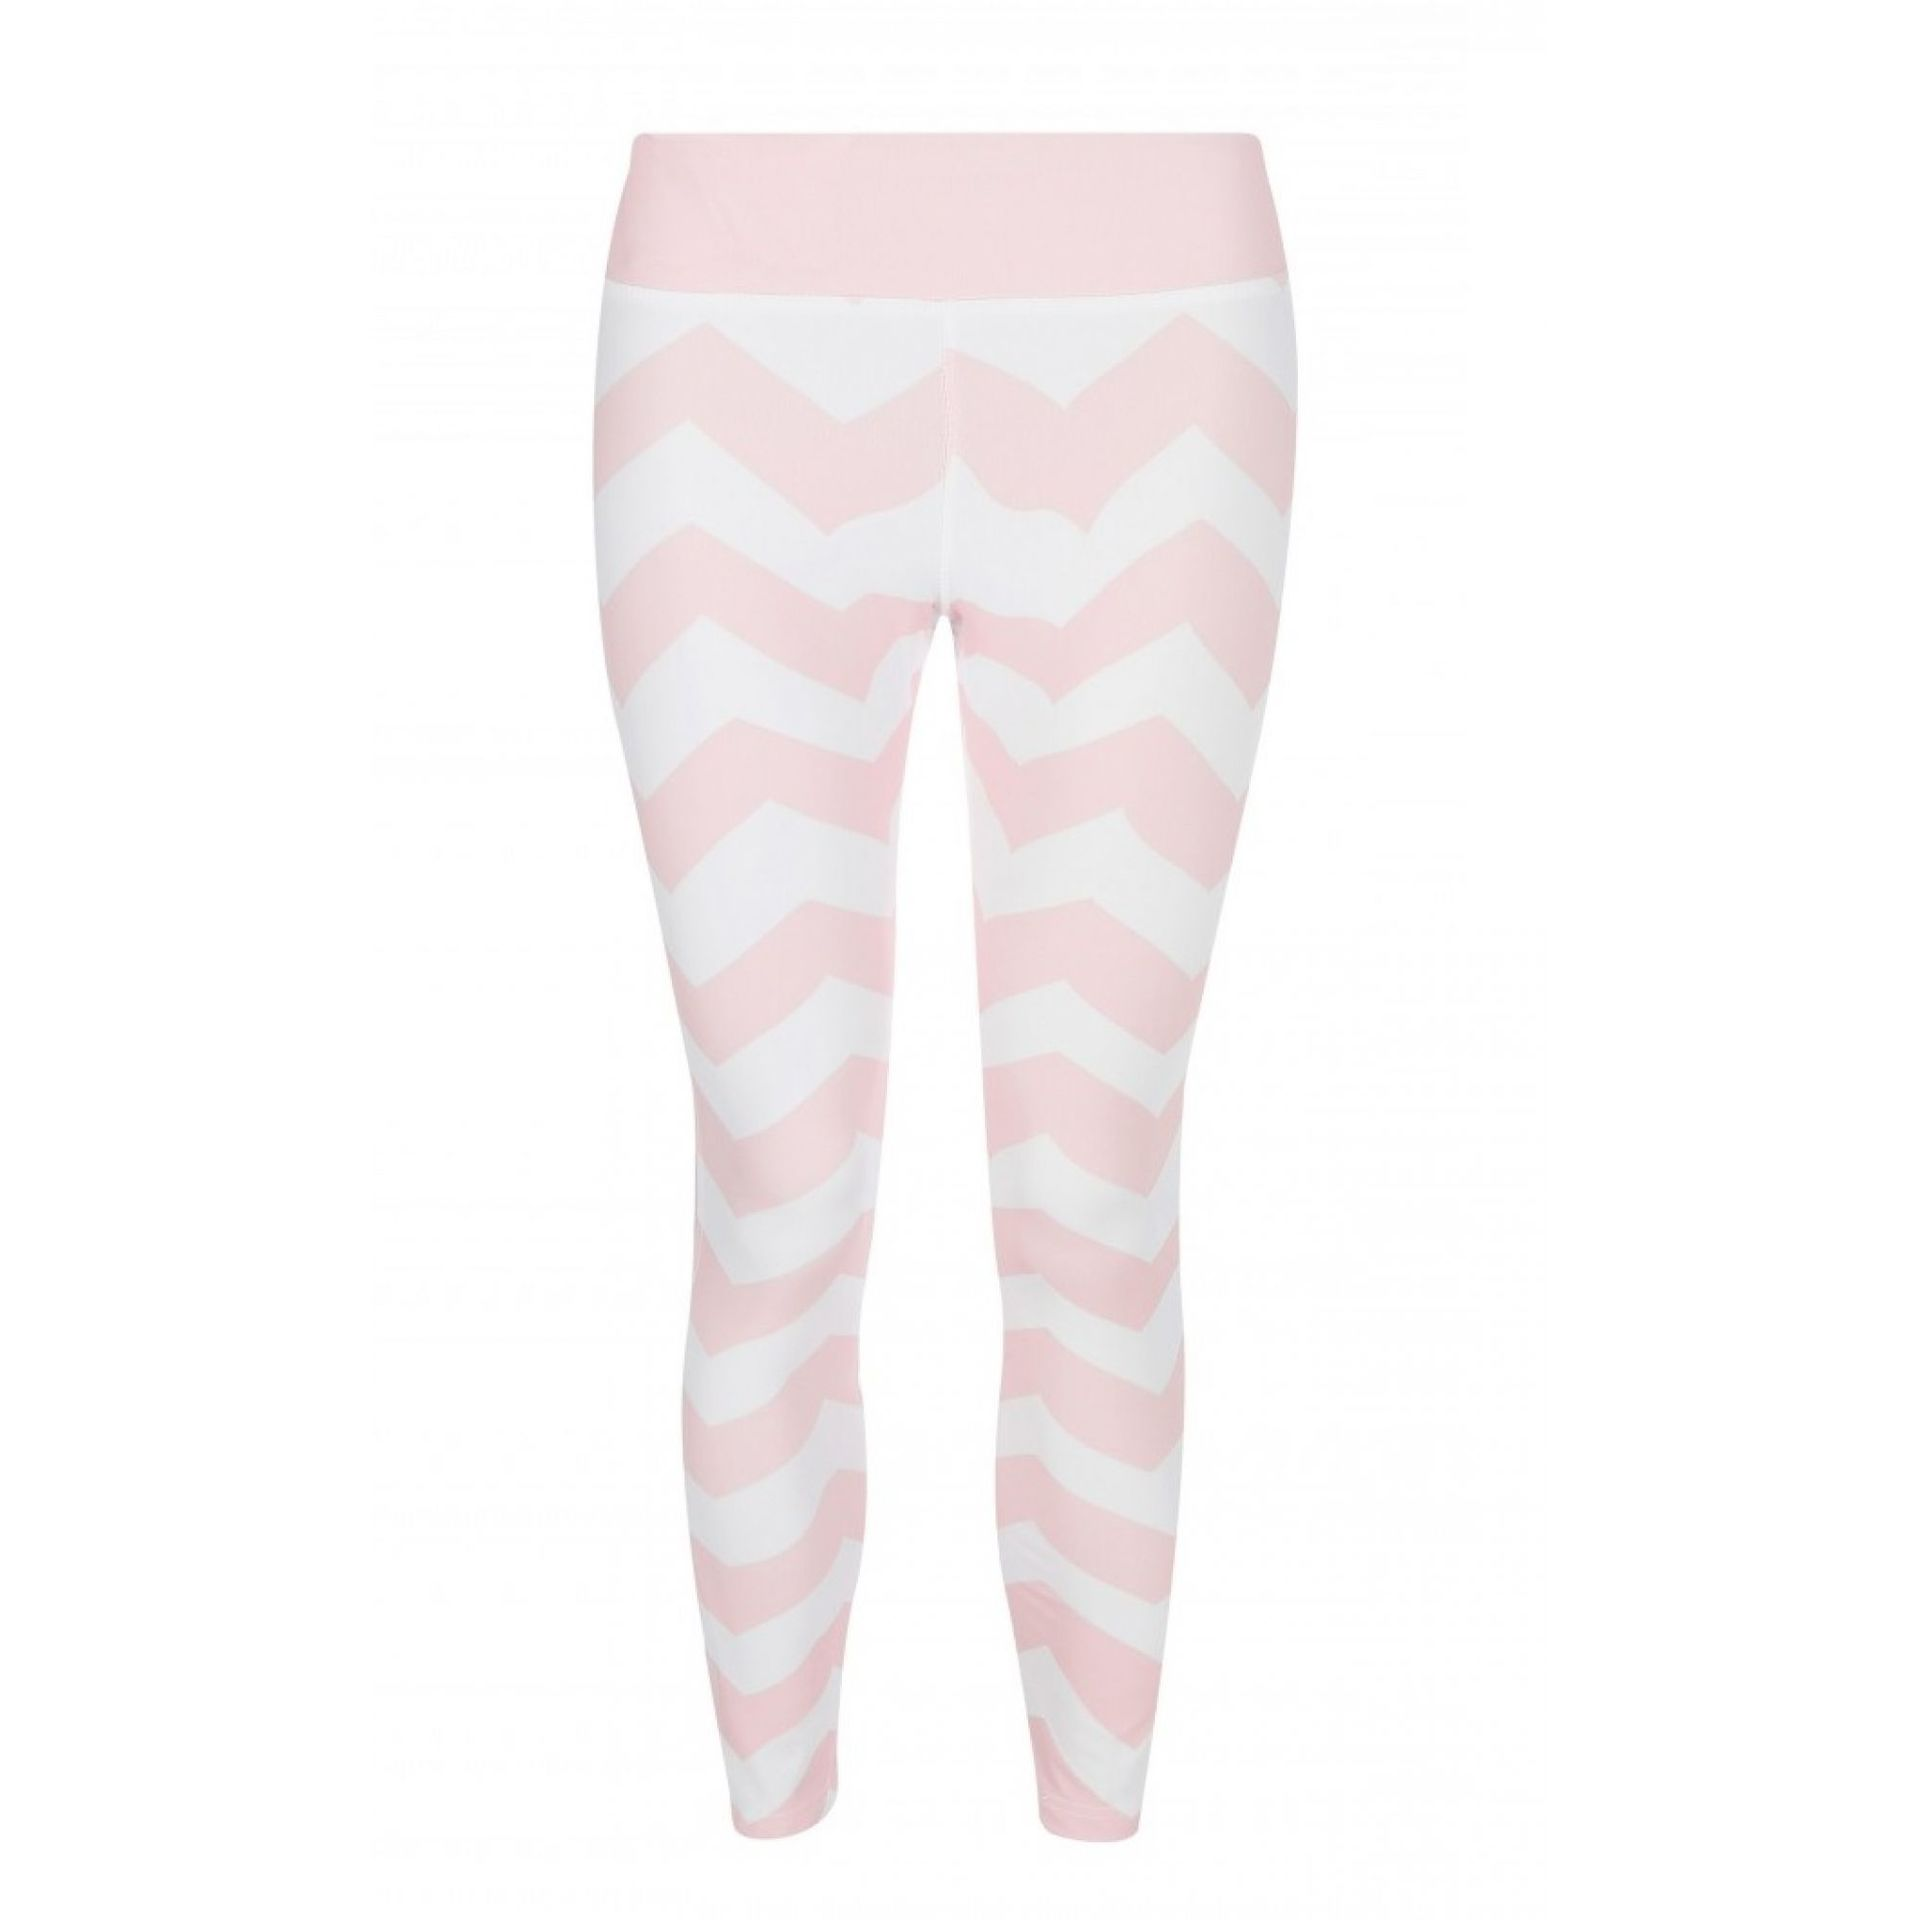 LEGINSY FEMI PLEASURE SPEED PINK ZIGZAK